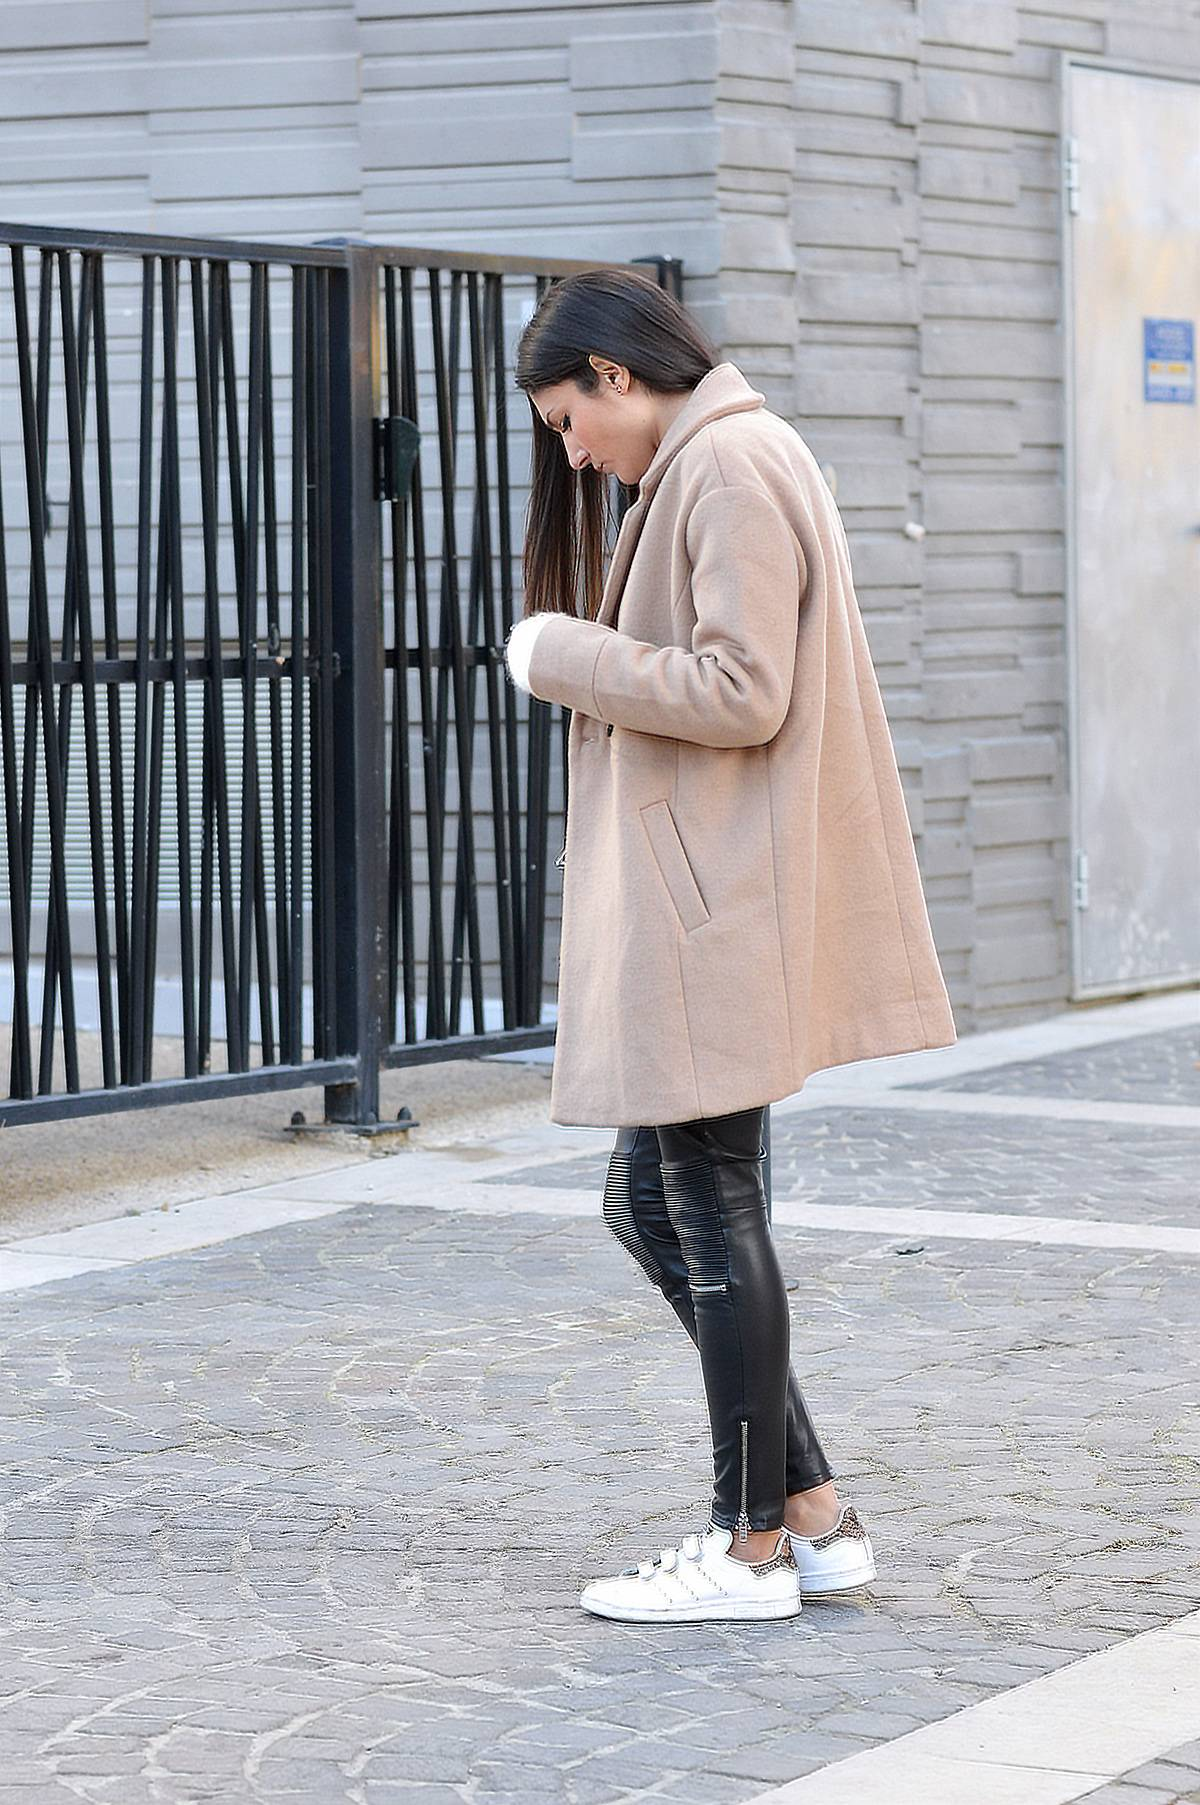 Leather leggings are in this winter! Federica L. shows us exactly how to wear the trend, pairing these zip detailed leggings with a gorgeous camel coat and a pair of Adidas Stan Smiths. Coat: Promod, Sweater/Trousers: Zara, Shoes: Zalando, Bag: André.